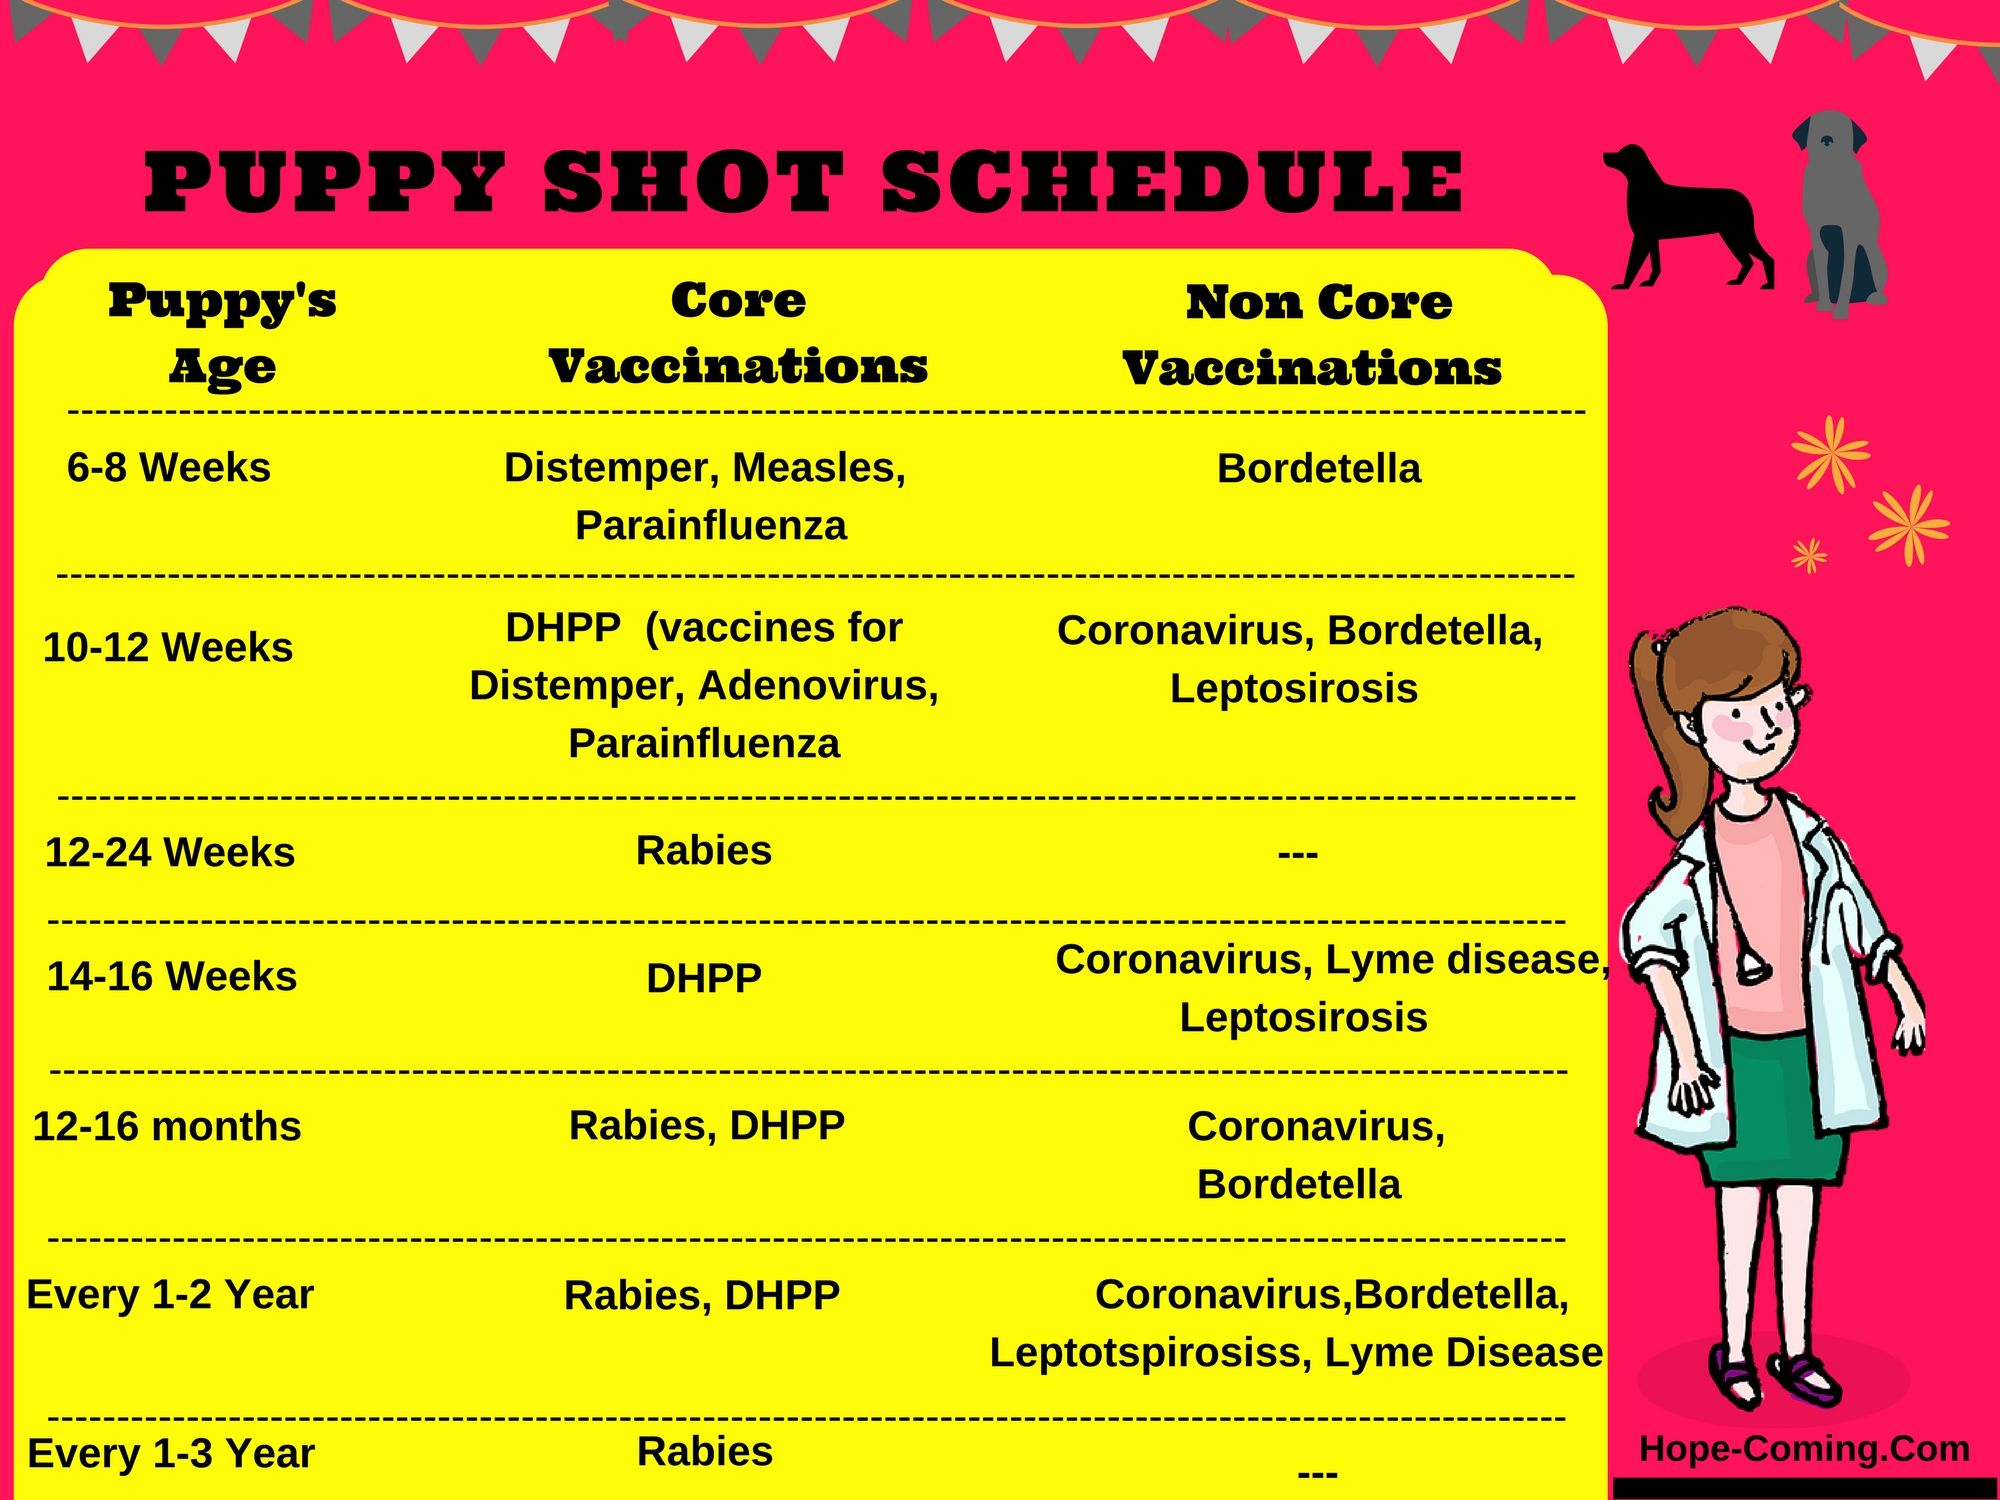 What vaccinations do puppies